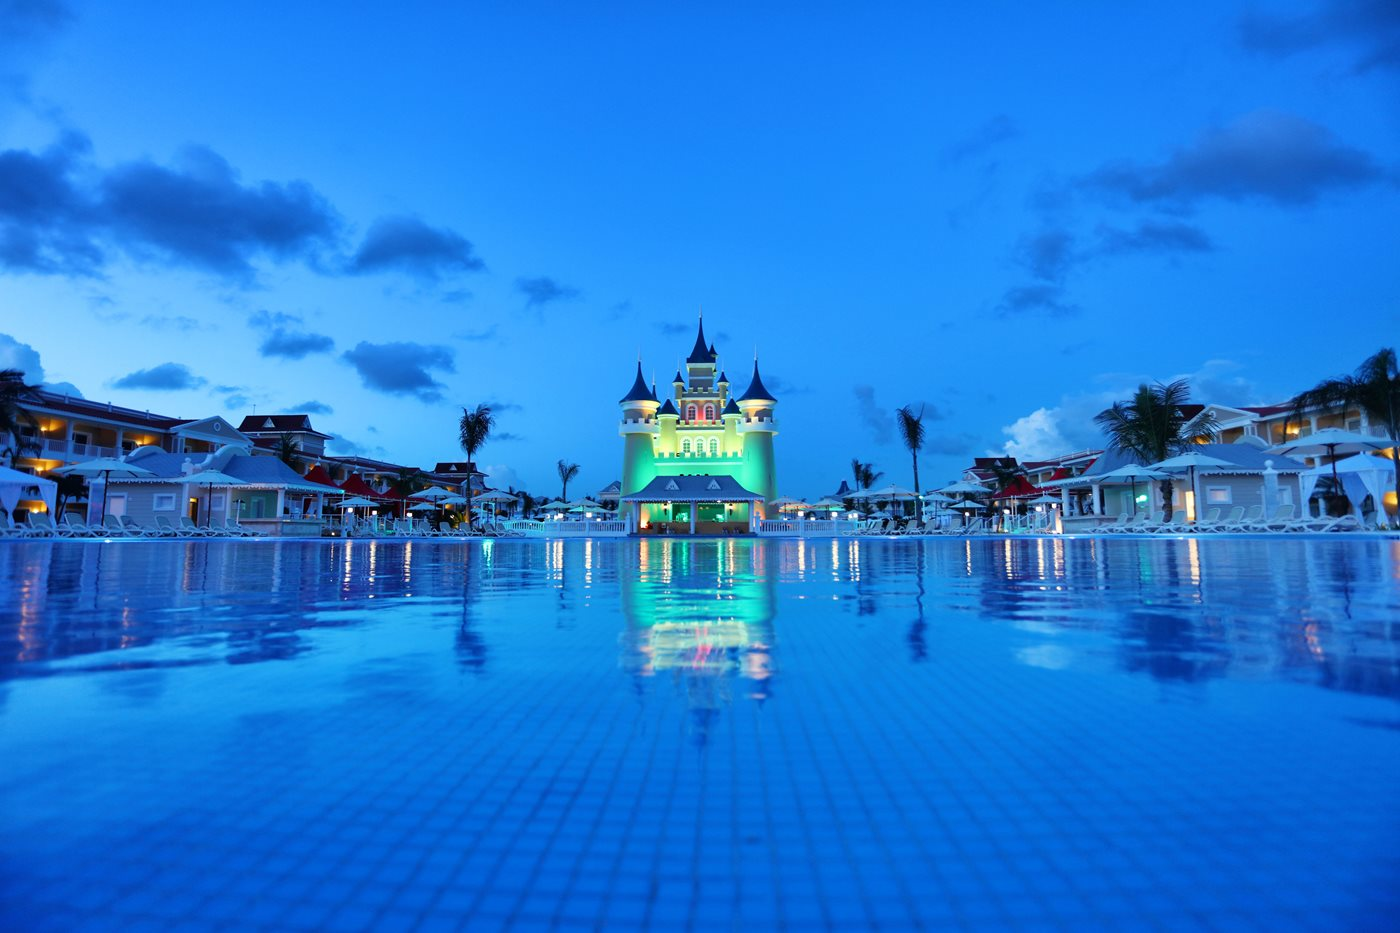 Luxury-Bahia-Principe-Fantasia-Pool-004